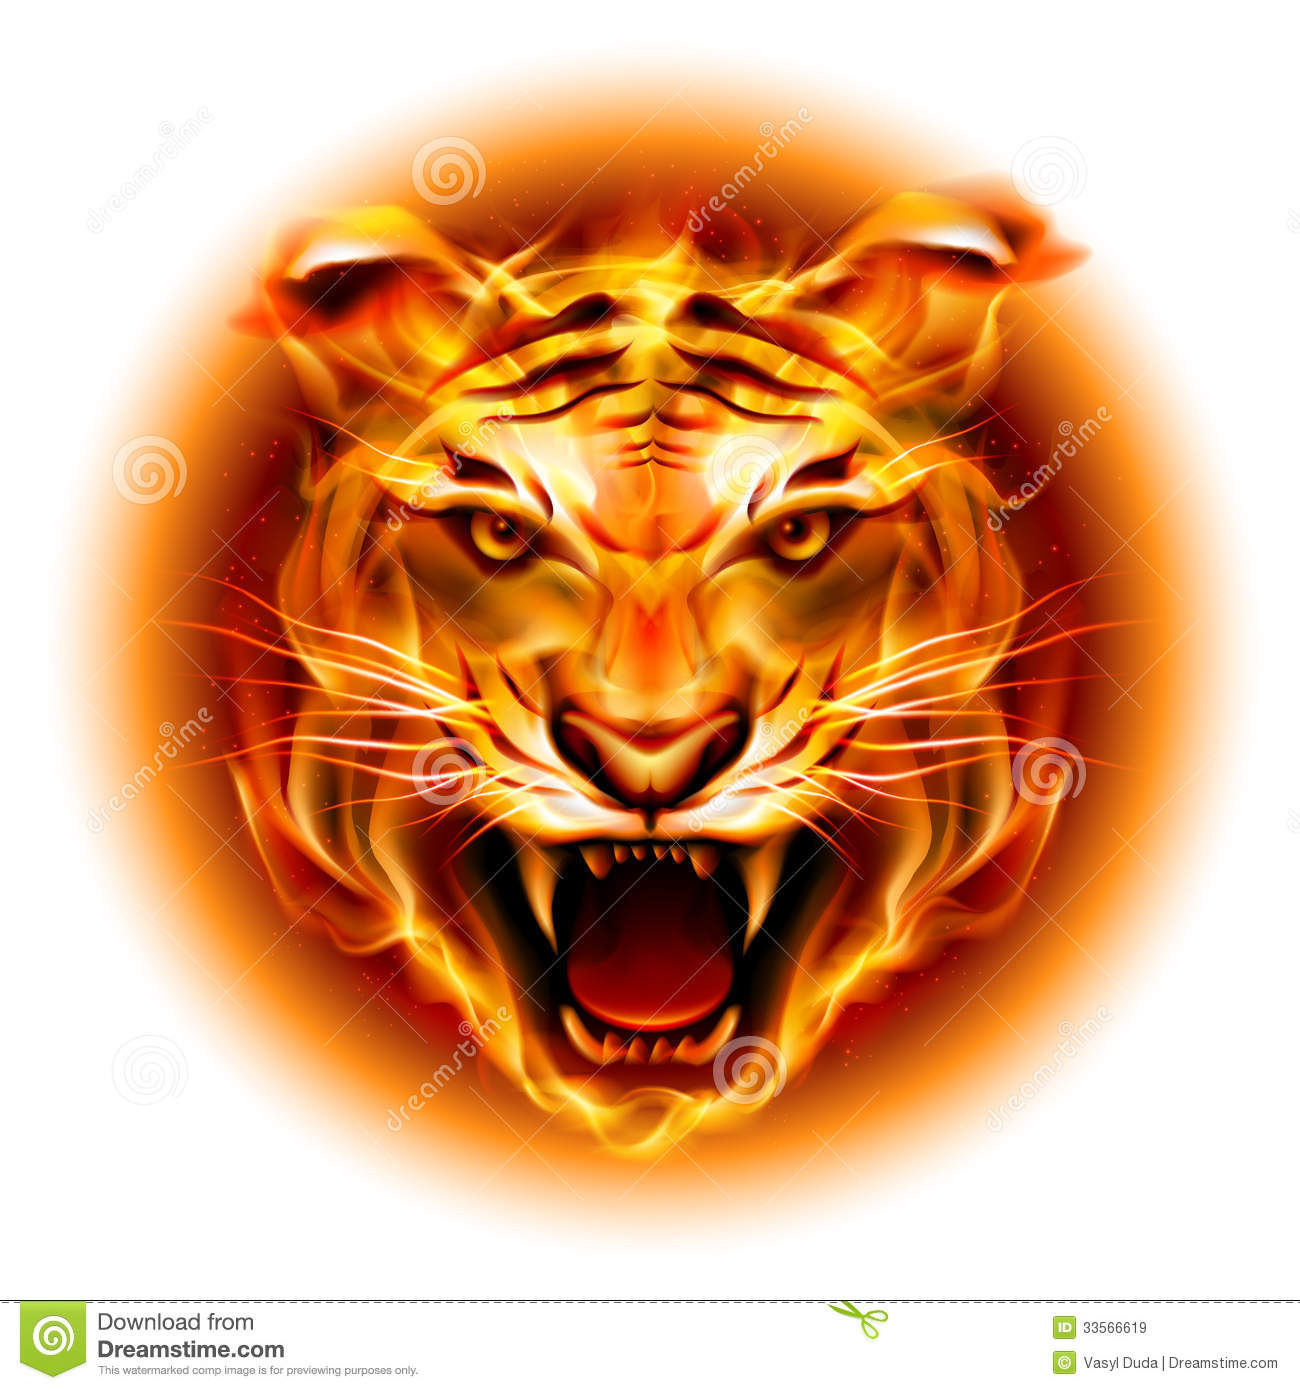 Head Of Fire Tiger Royalty Free Stock Images - Image: 33566619